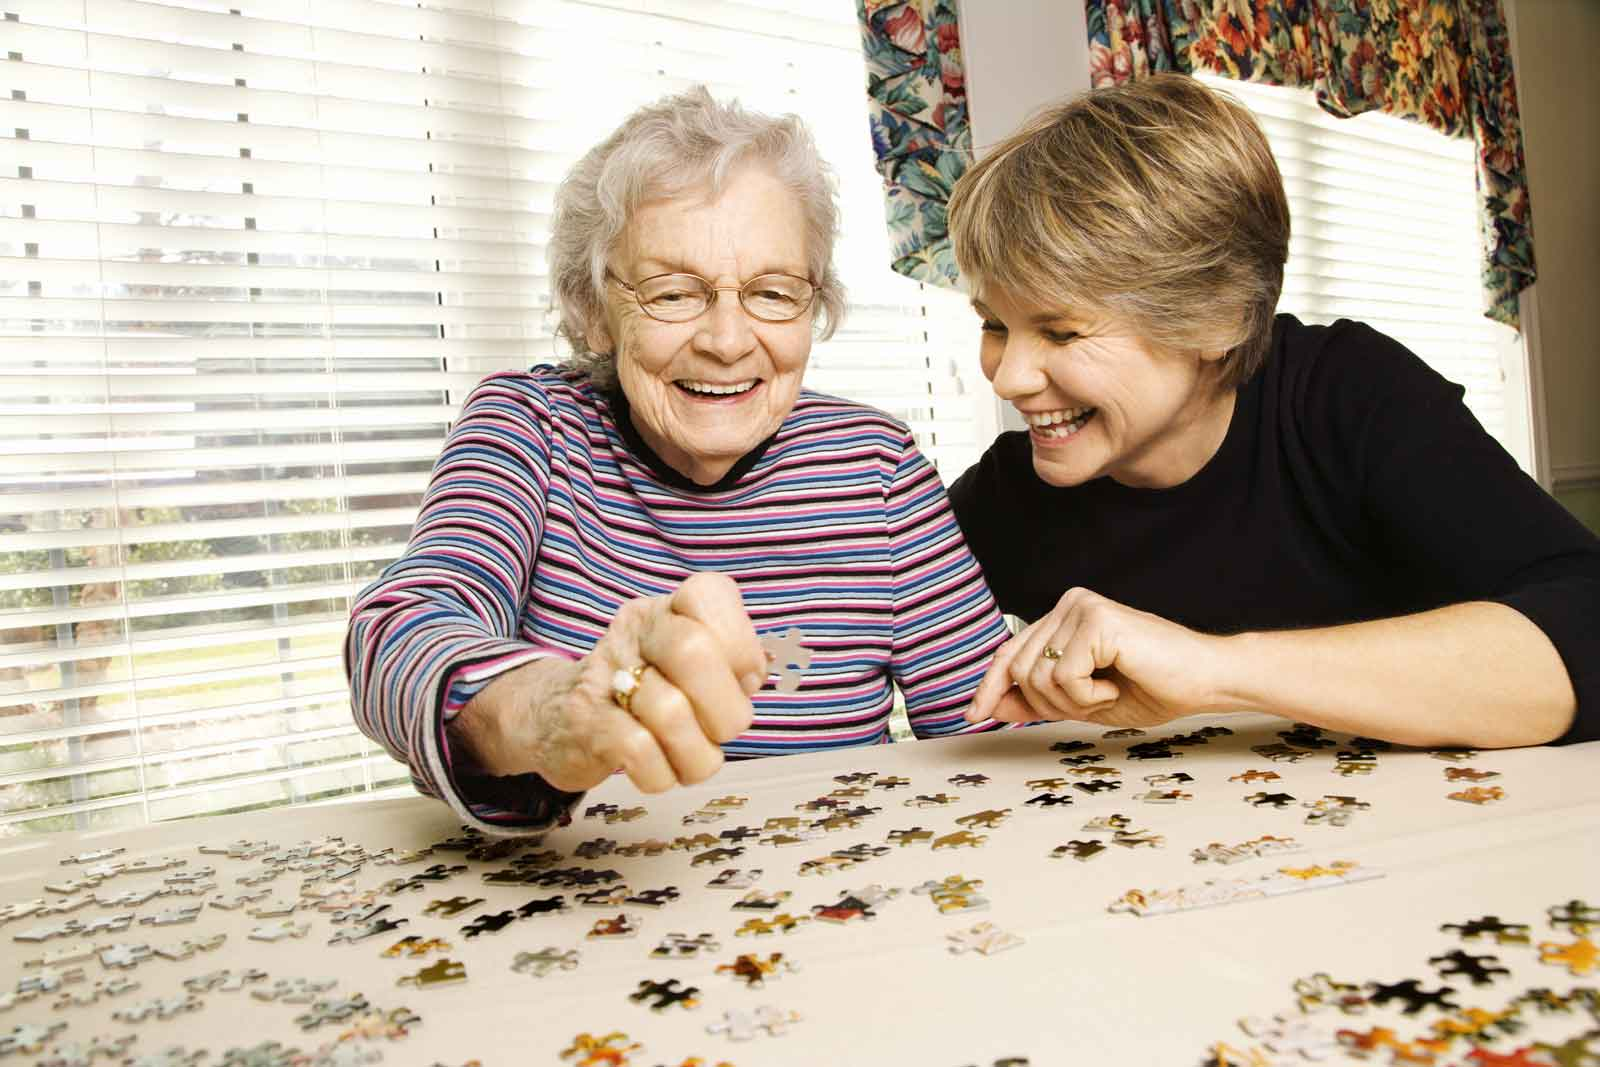 Companion care aid playing a jigsaw puzzle with a client